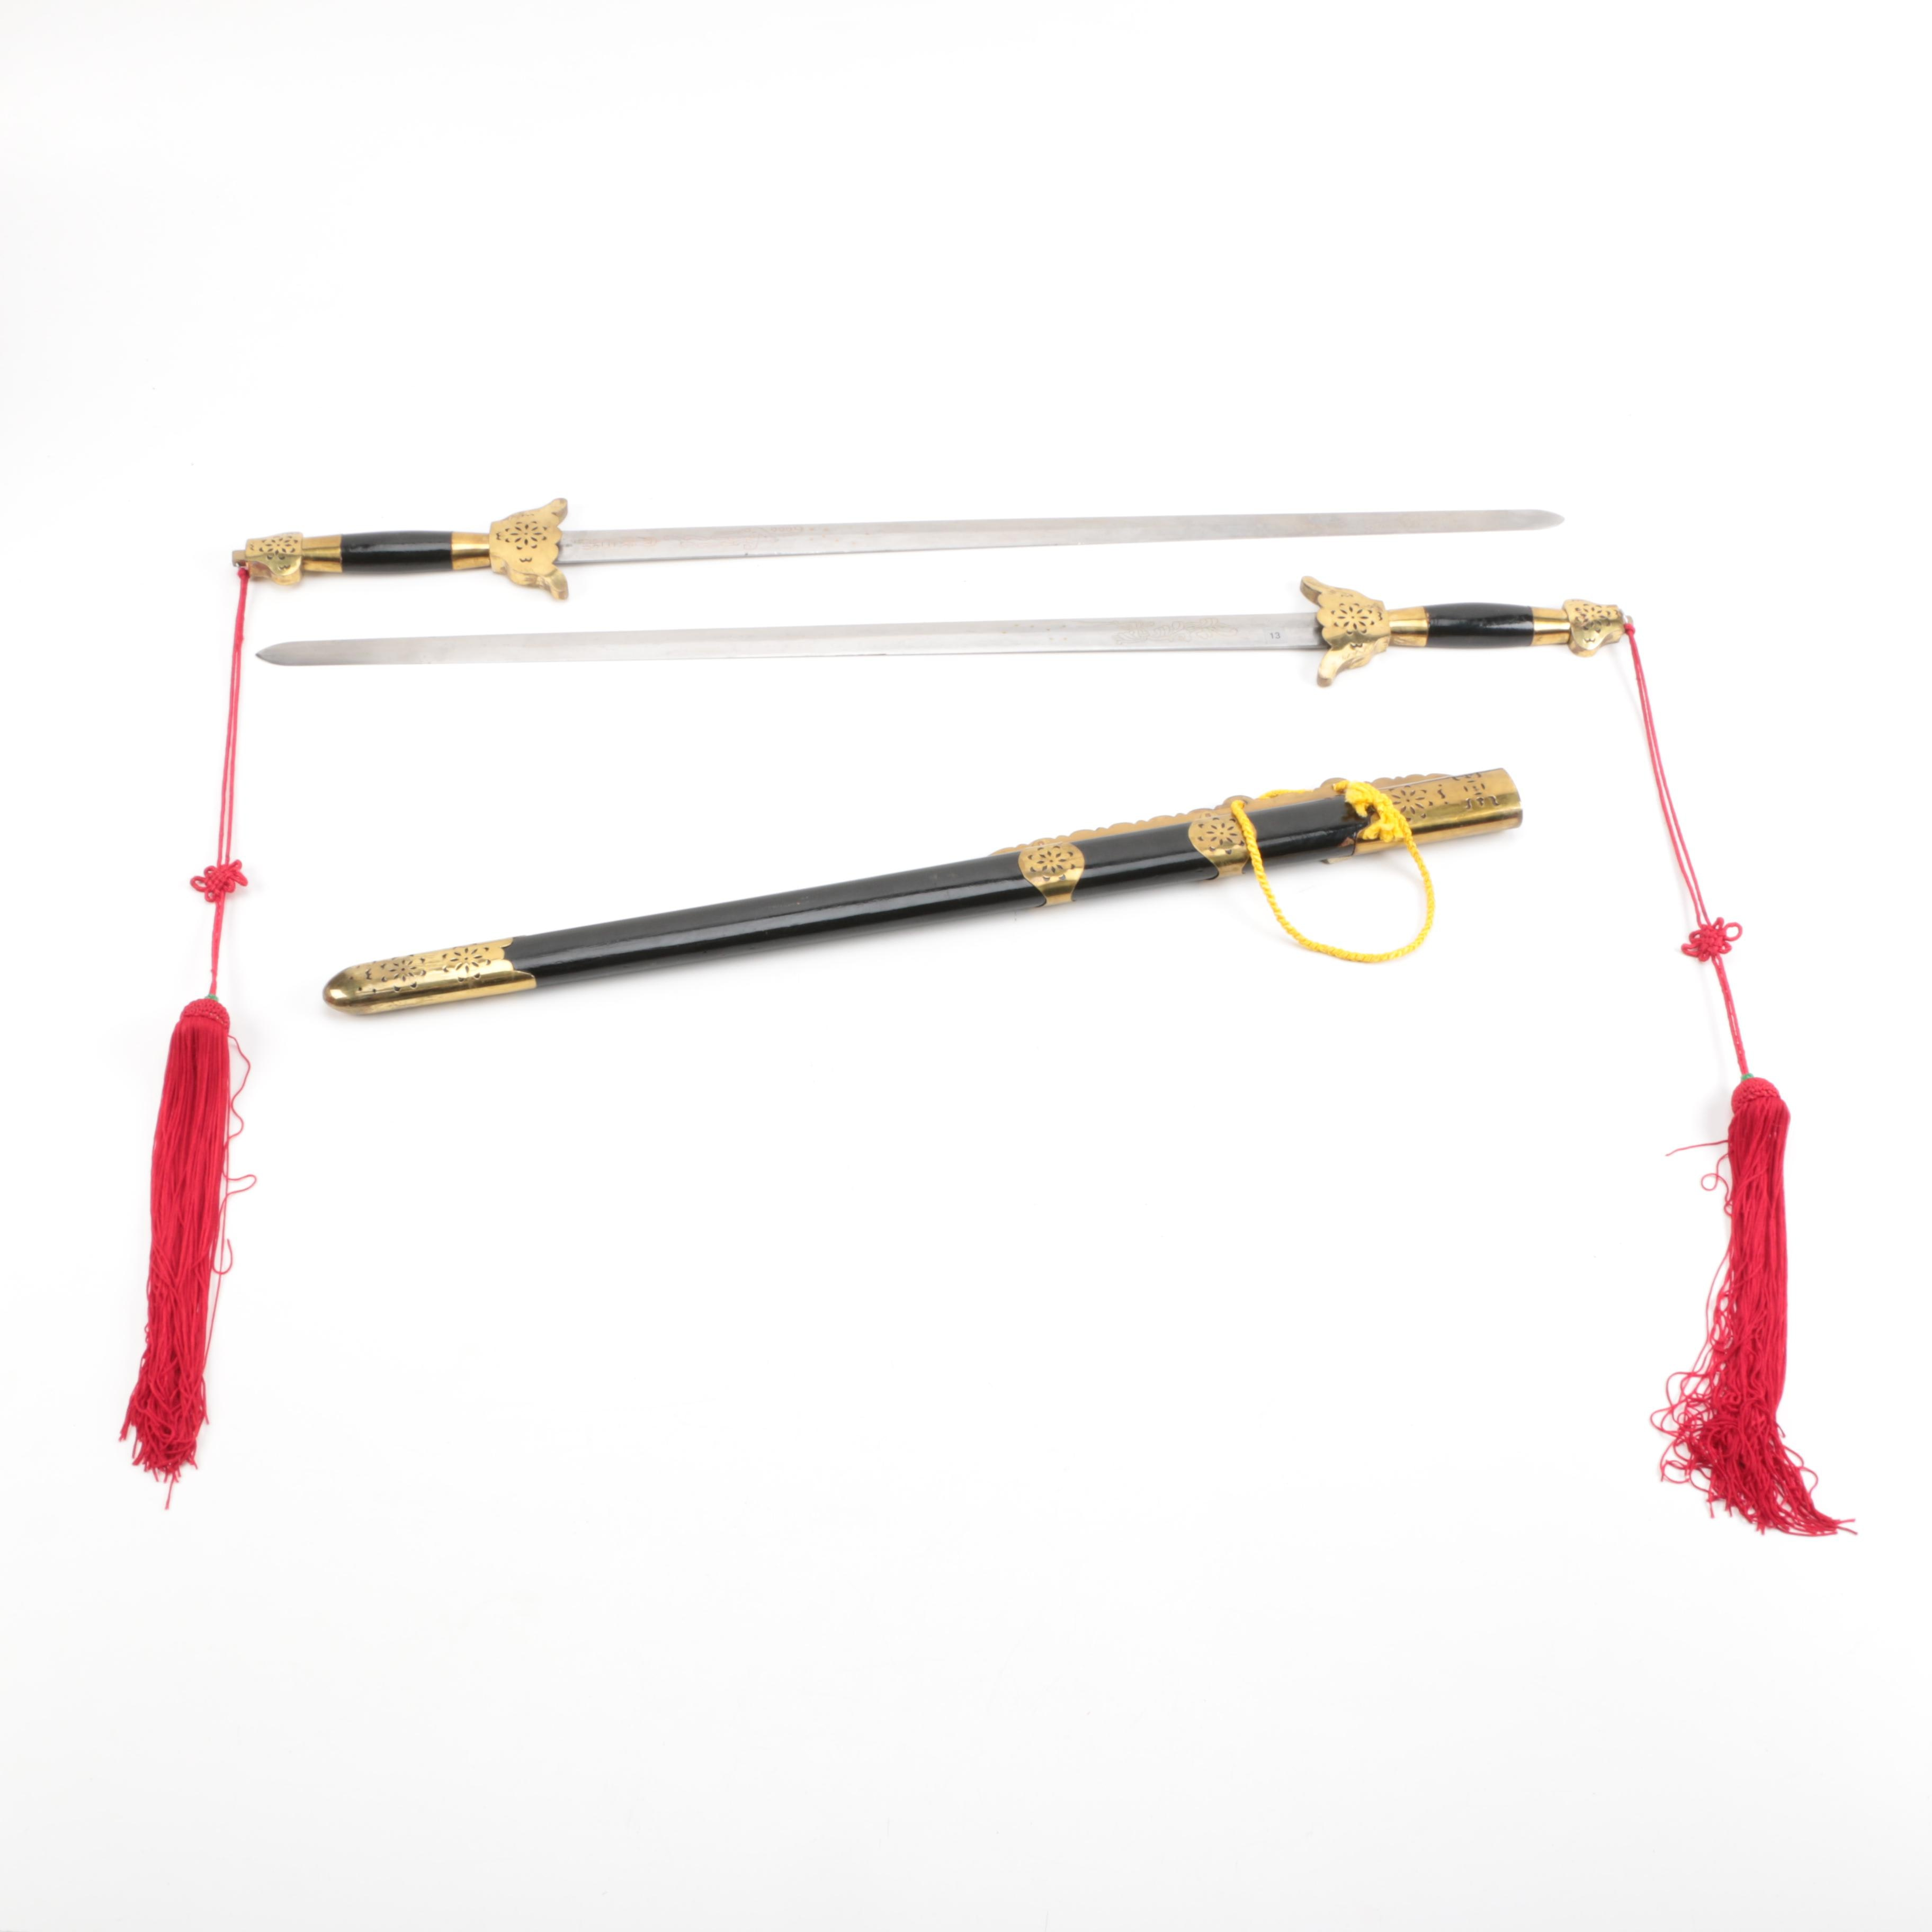 Jian Swords with Scabbard